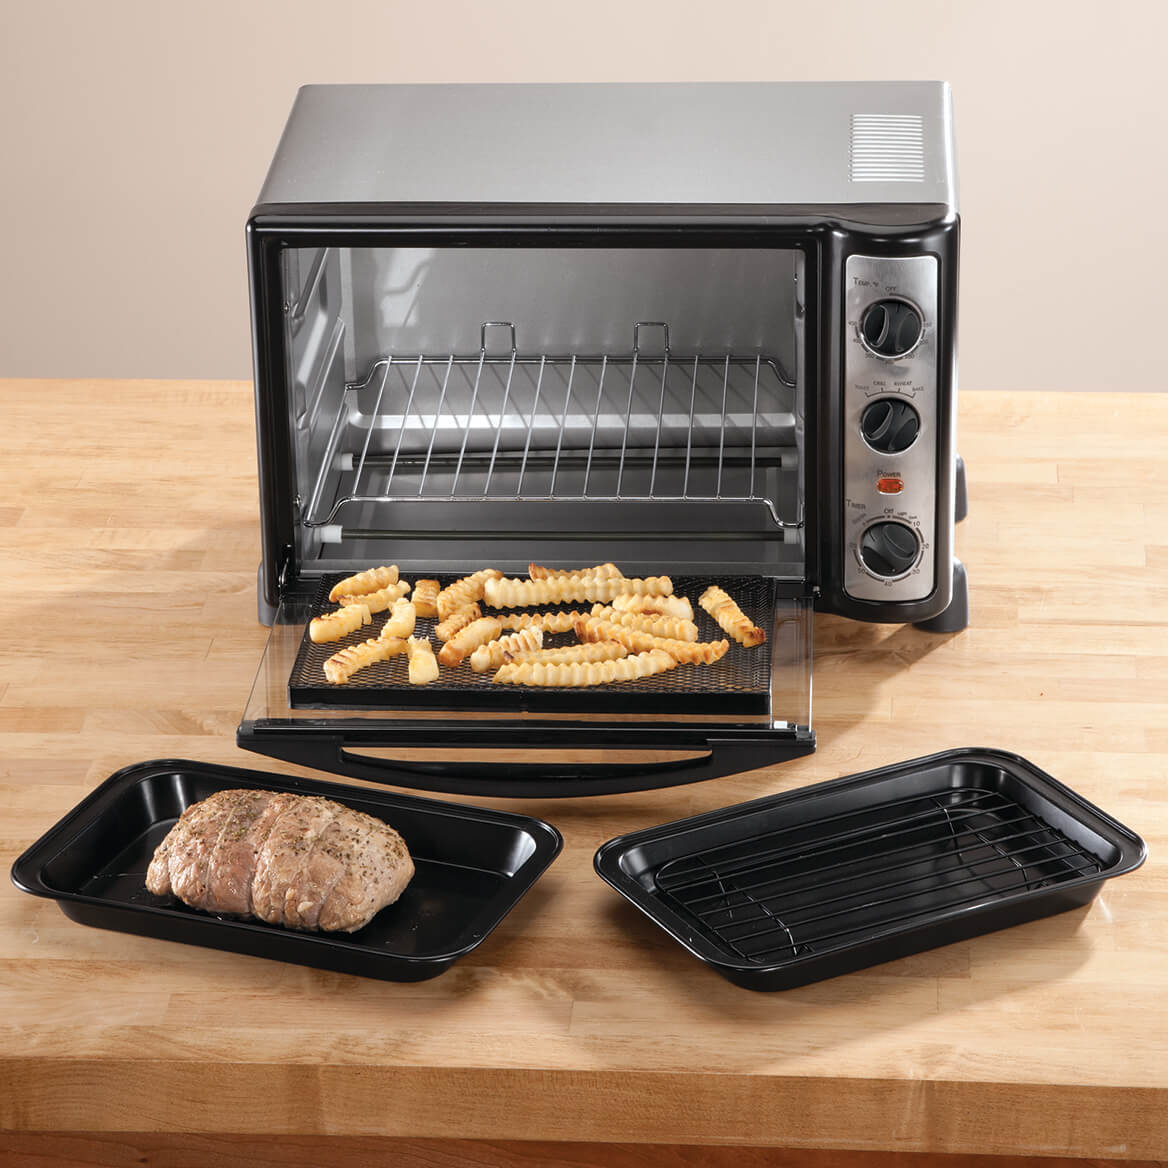 Toaster Oven Pans By Home Style Kitchen Miles Kimball